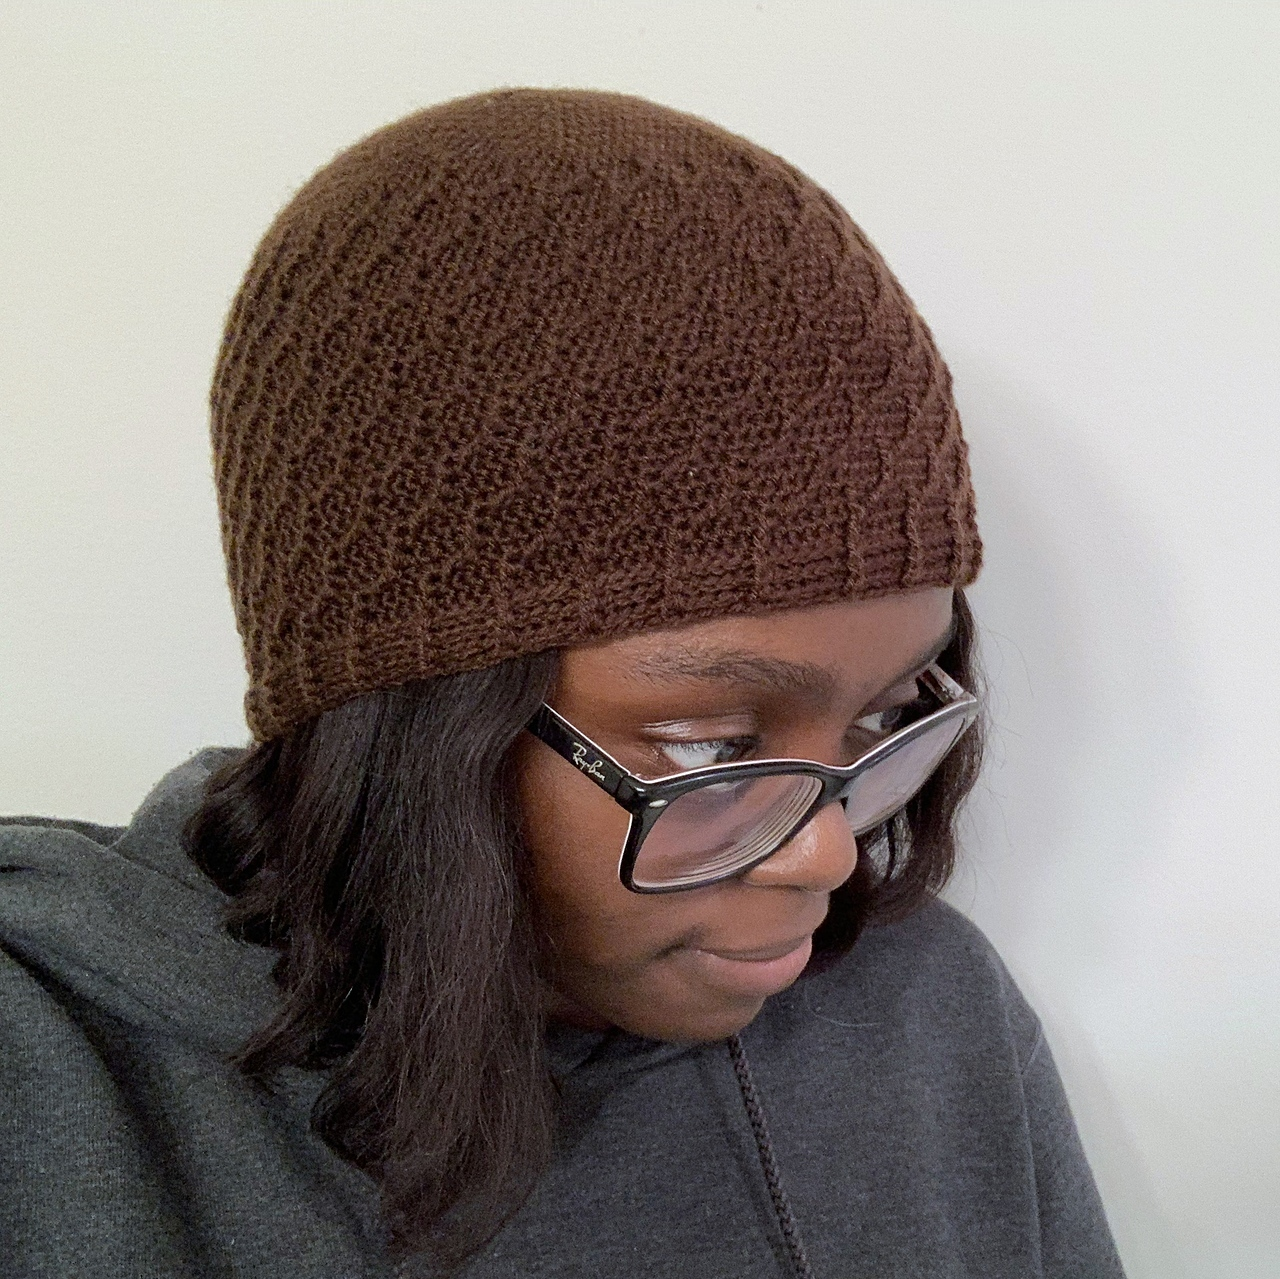 Tested by Kemi from Kemical Creations